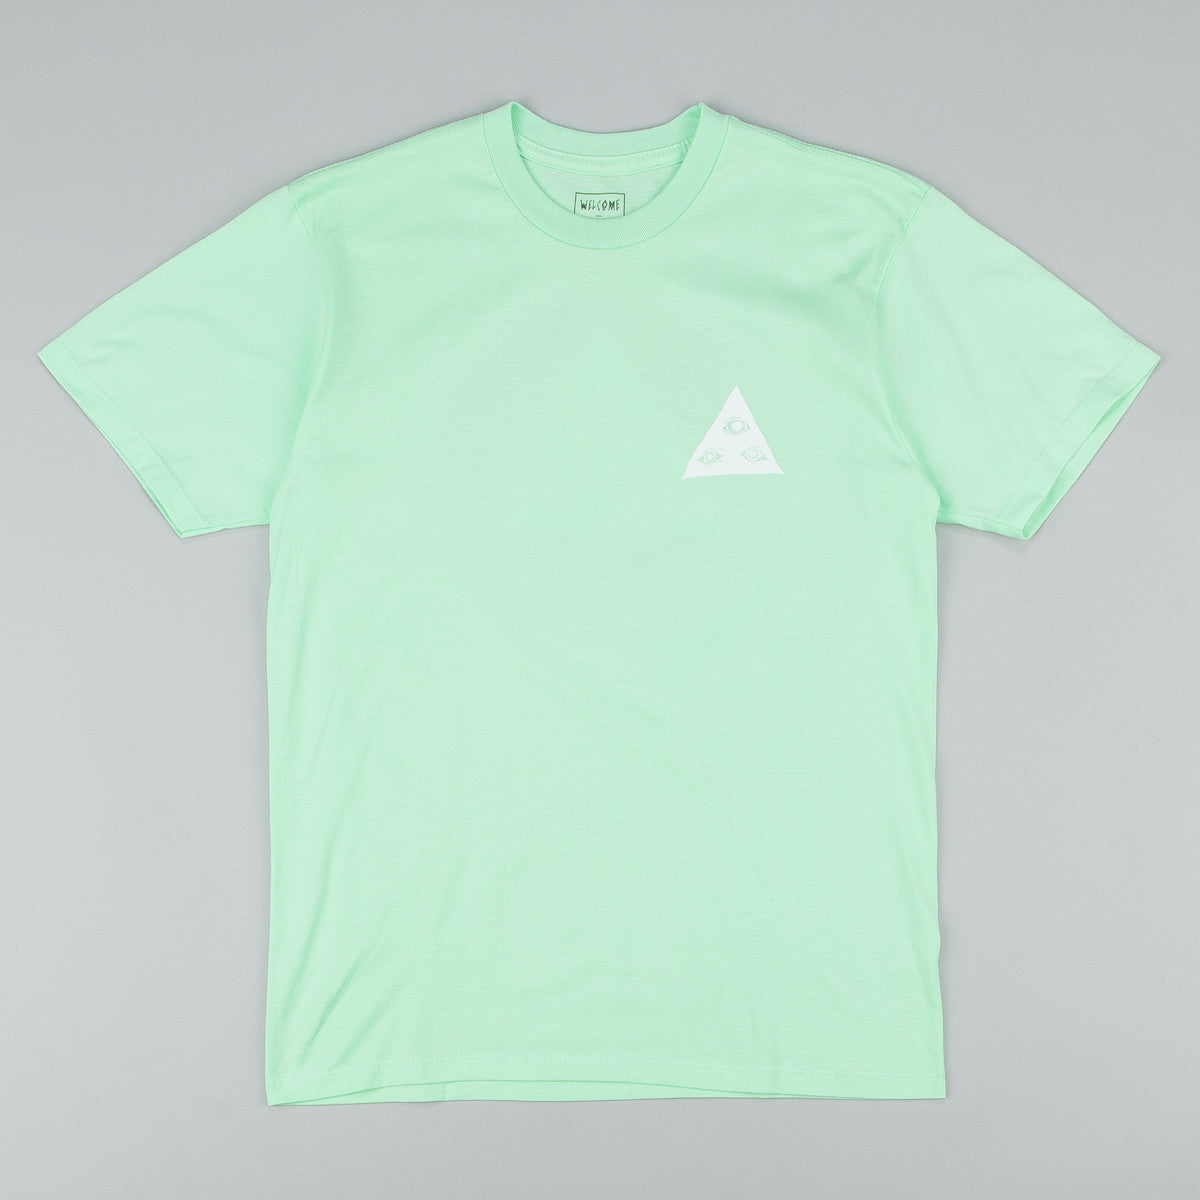 Welcome Talisman Tri-Colour T-Shirt